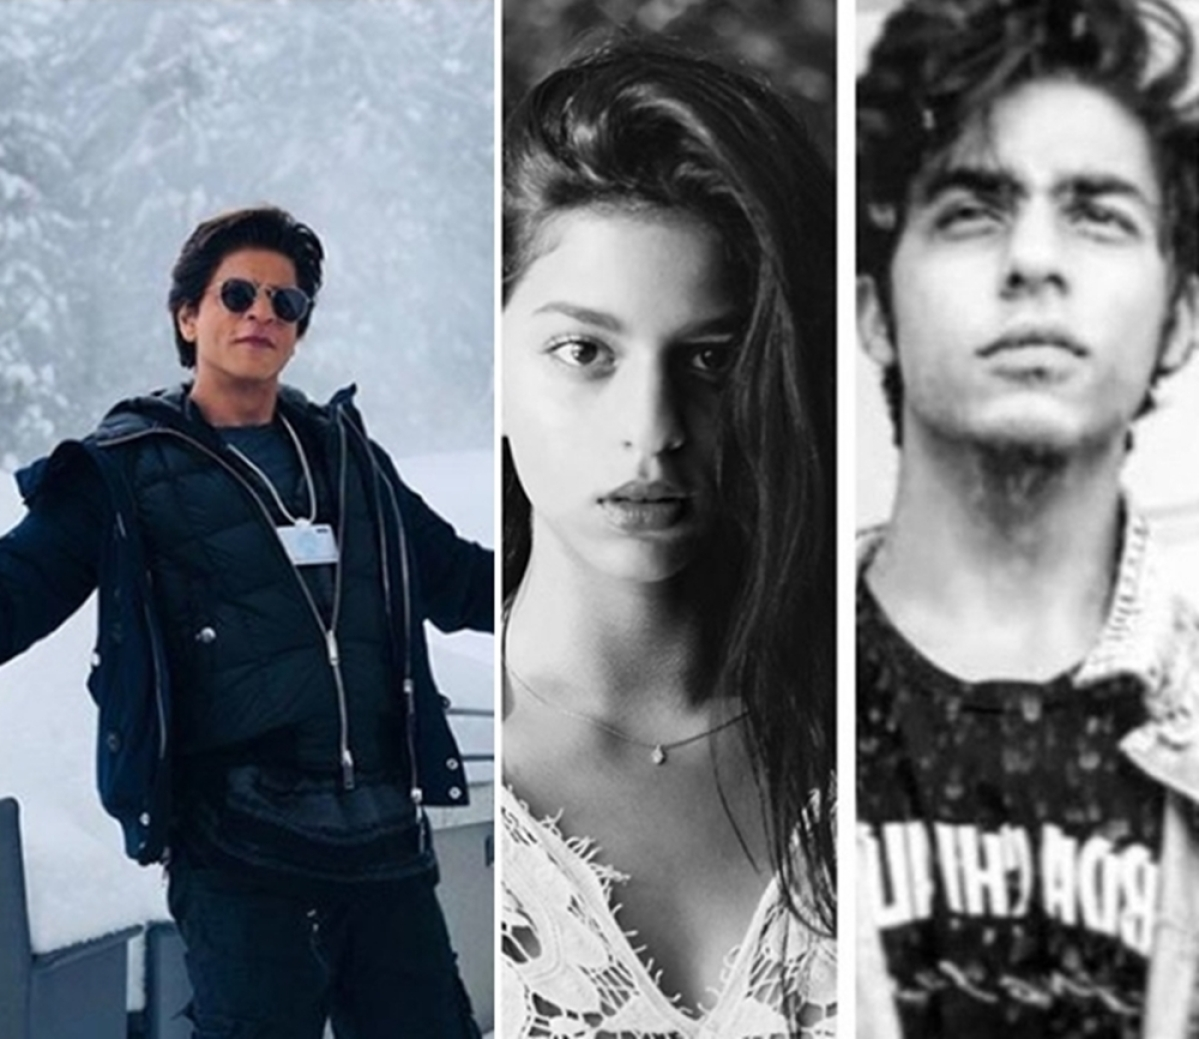 Shah Rukh Khan confirms Suhana's acting plans, reveals Aryan more inclined towards being a director